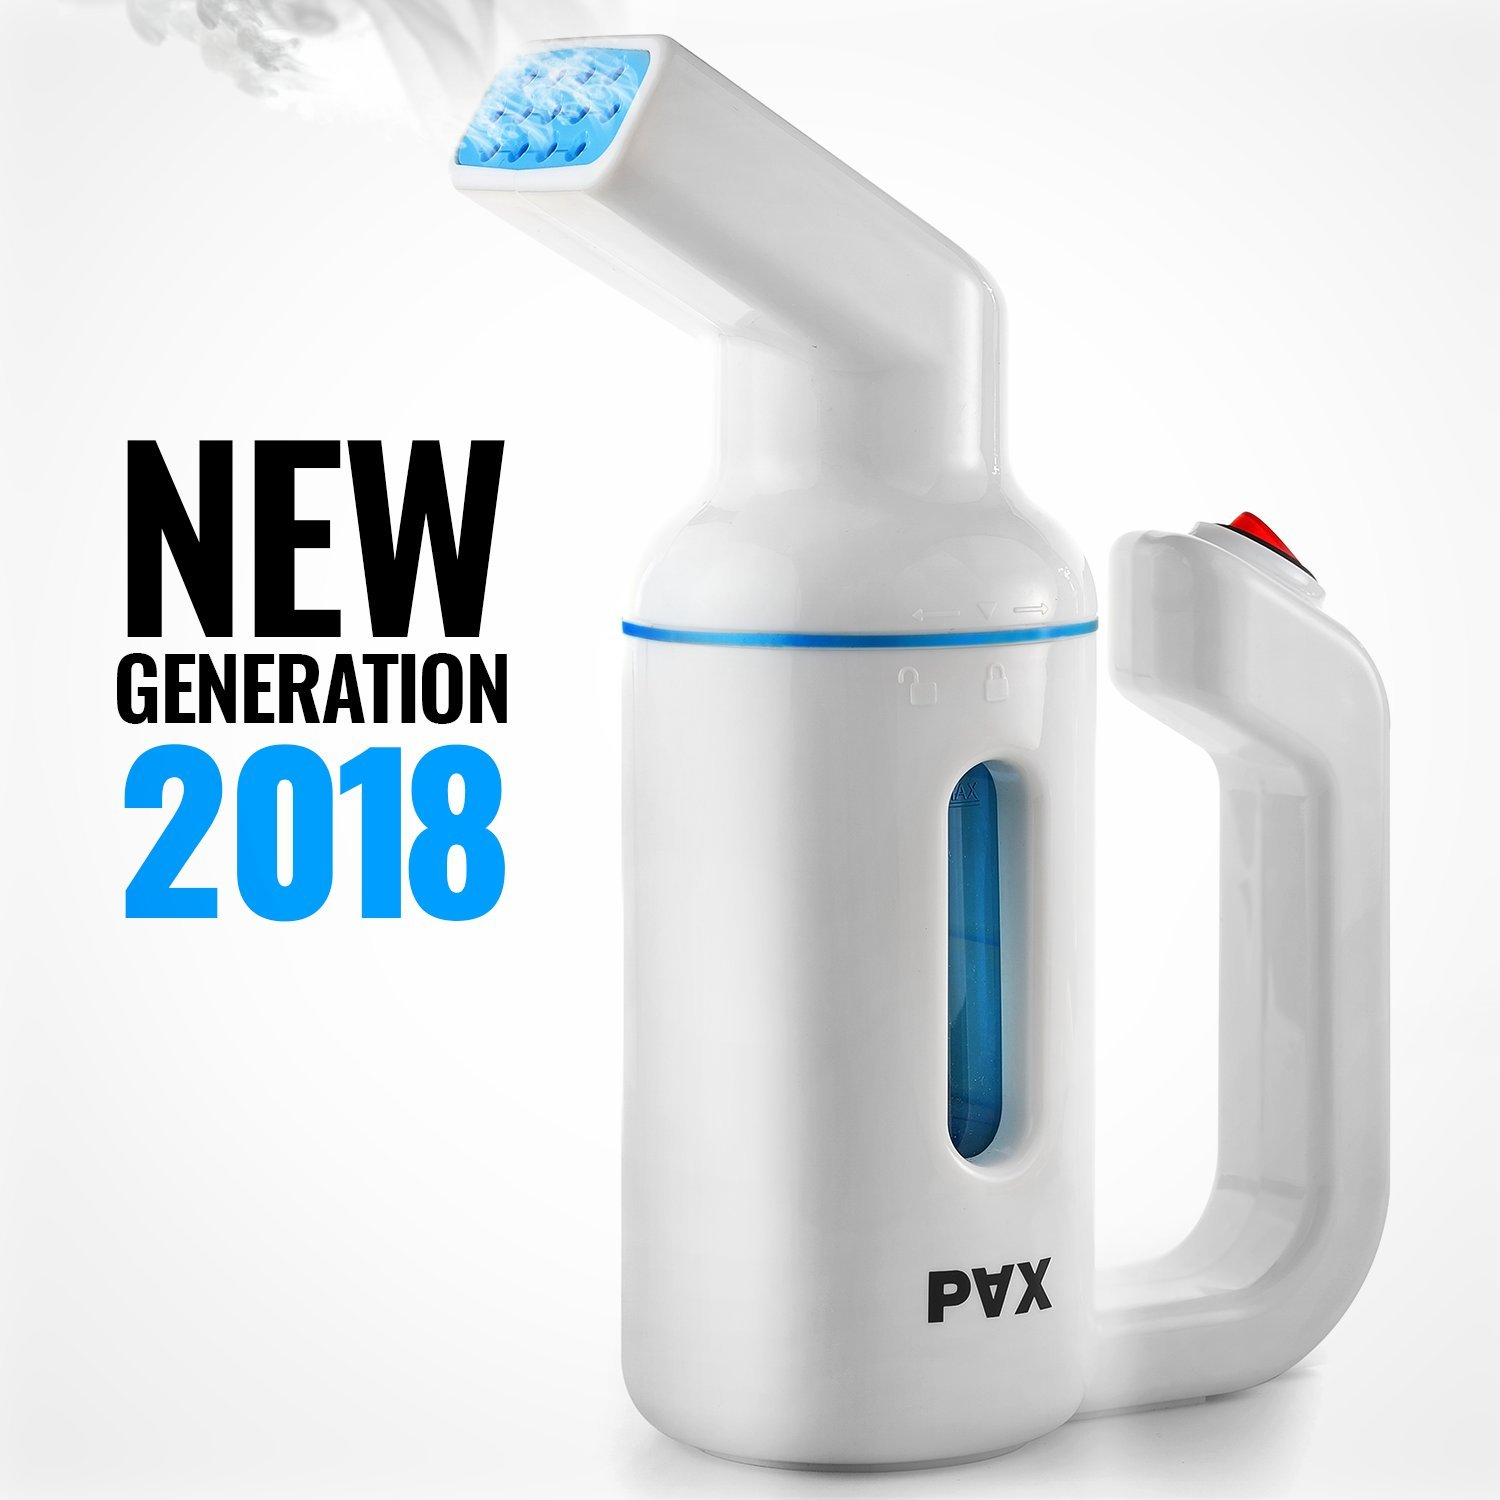 PAX Clothes Steamer, Travel and Home Handheld Garment Steamer, 150ML Capacity Garment Steamer, Automatic Shut Off Safety Protection